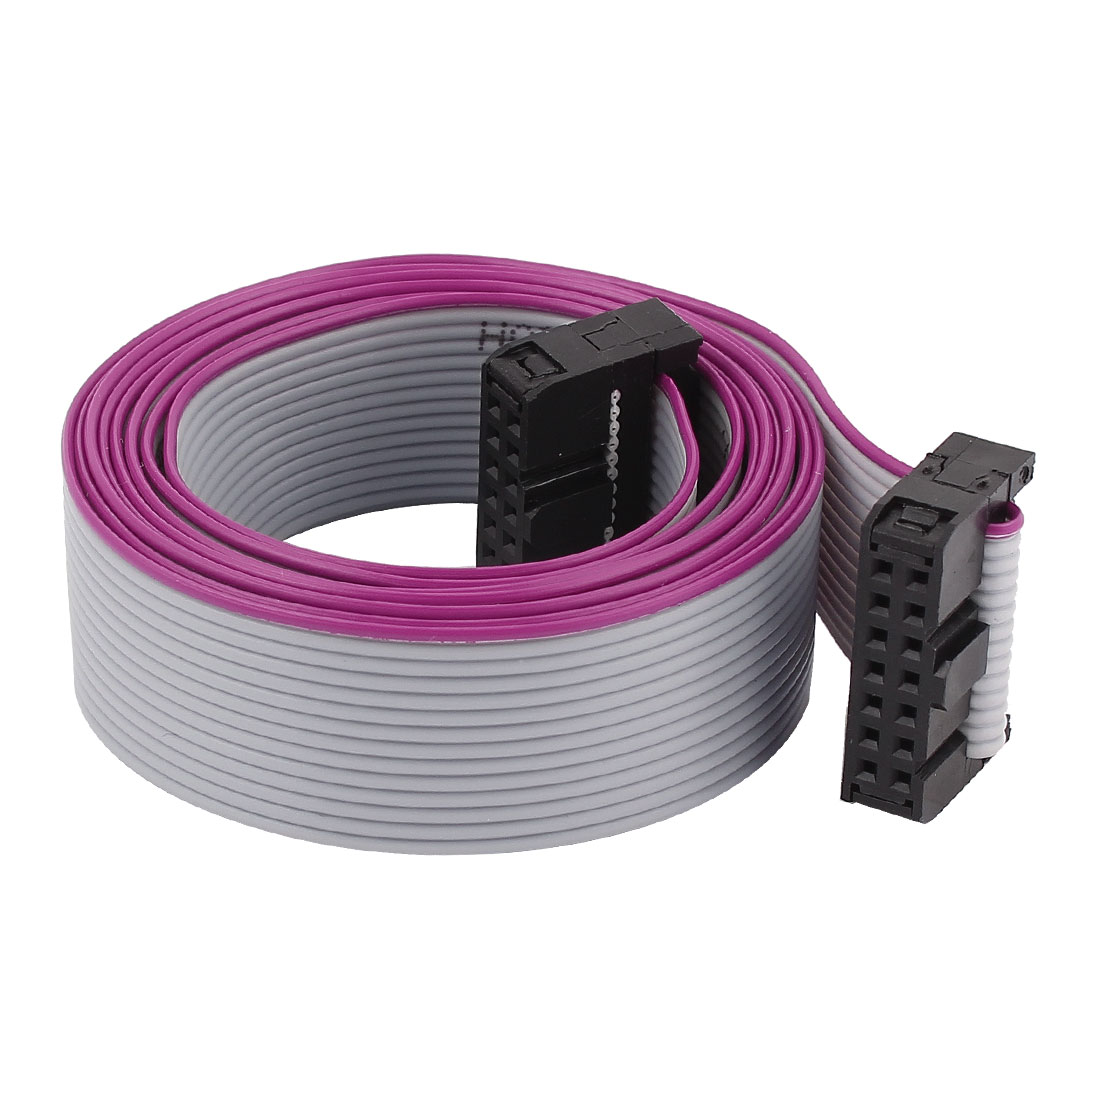 2.54mm Pitch 14Pin 14 Wire F/F IDC Connector Flat Ribbon Cable 118cm